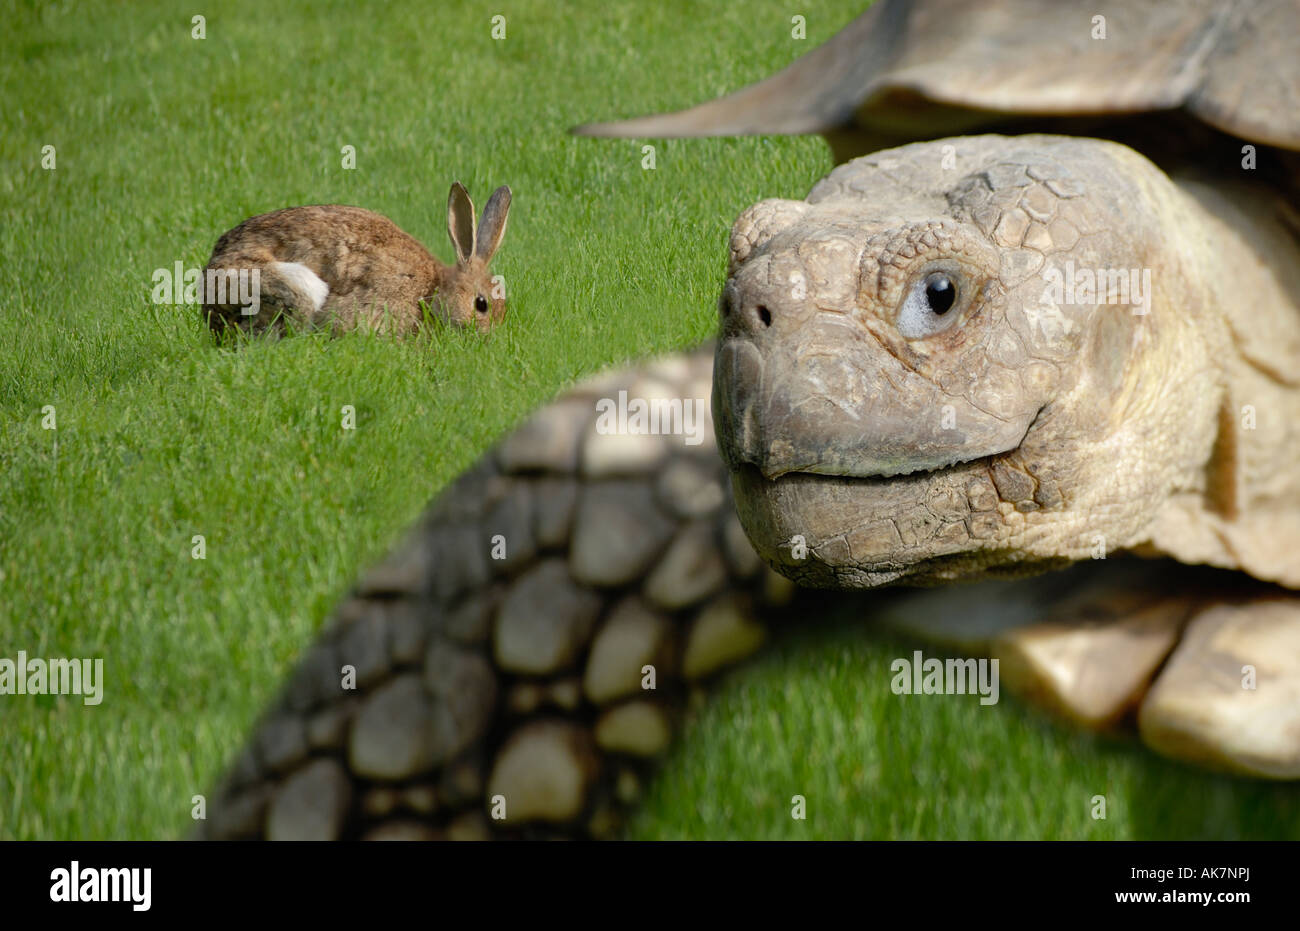 Tortoise and hare - Stock Image